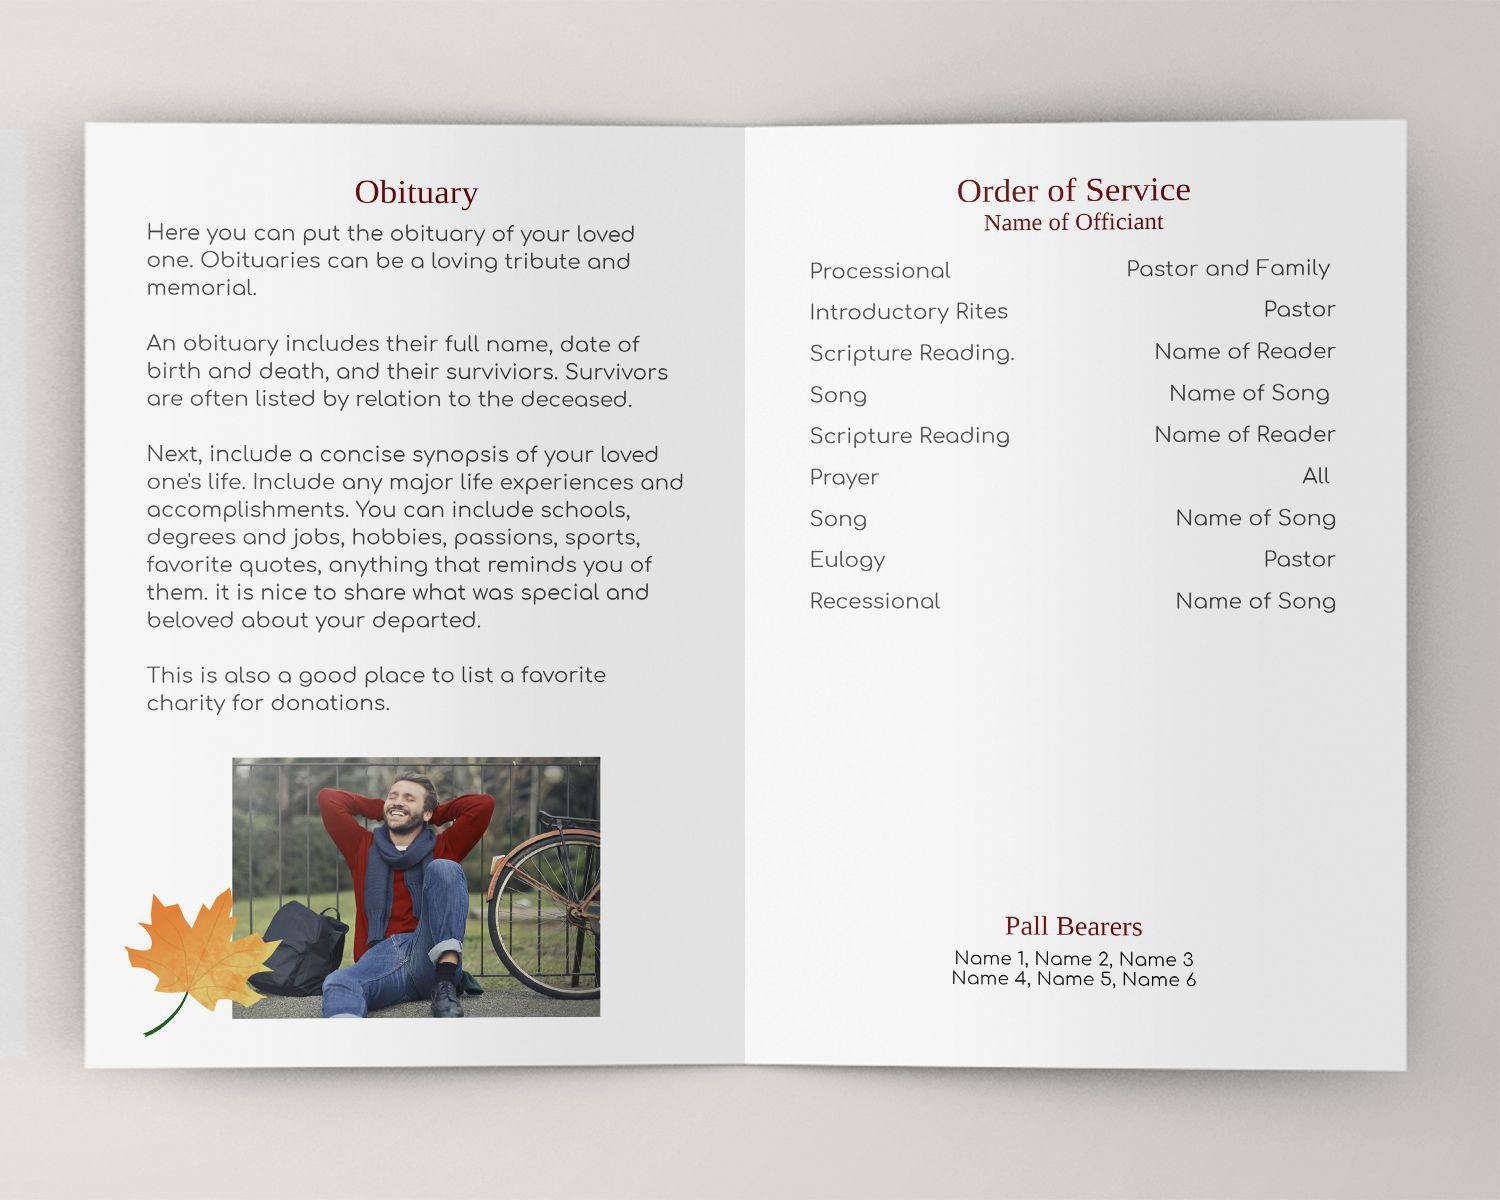 000 Magnificent Example Funeral Programme Sample  Format Of Program Template Free To DownloadFull